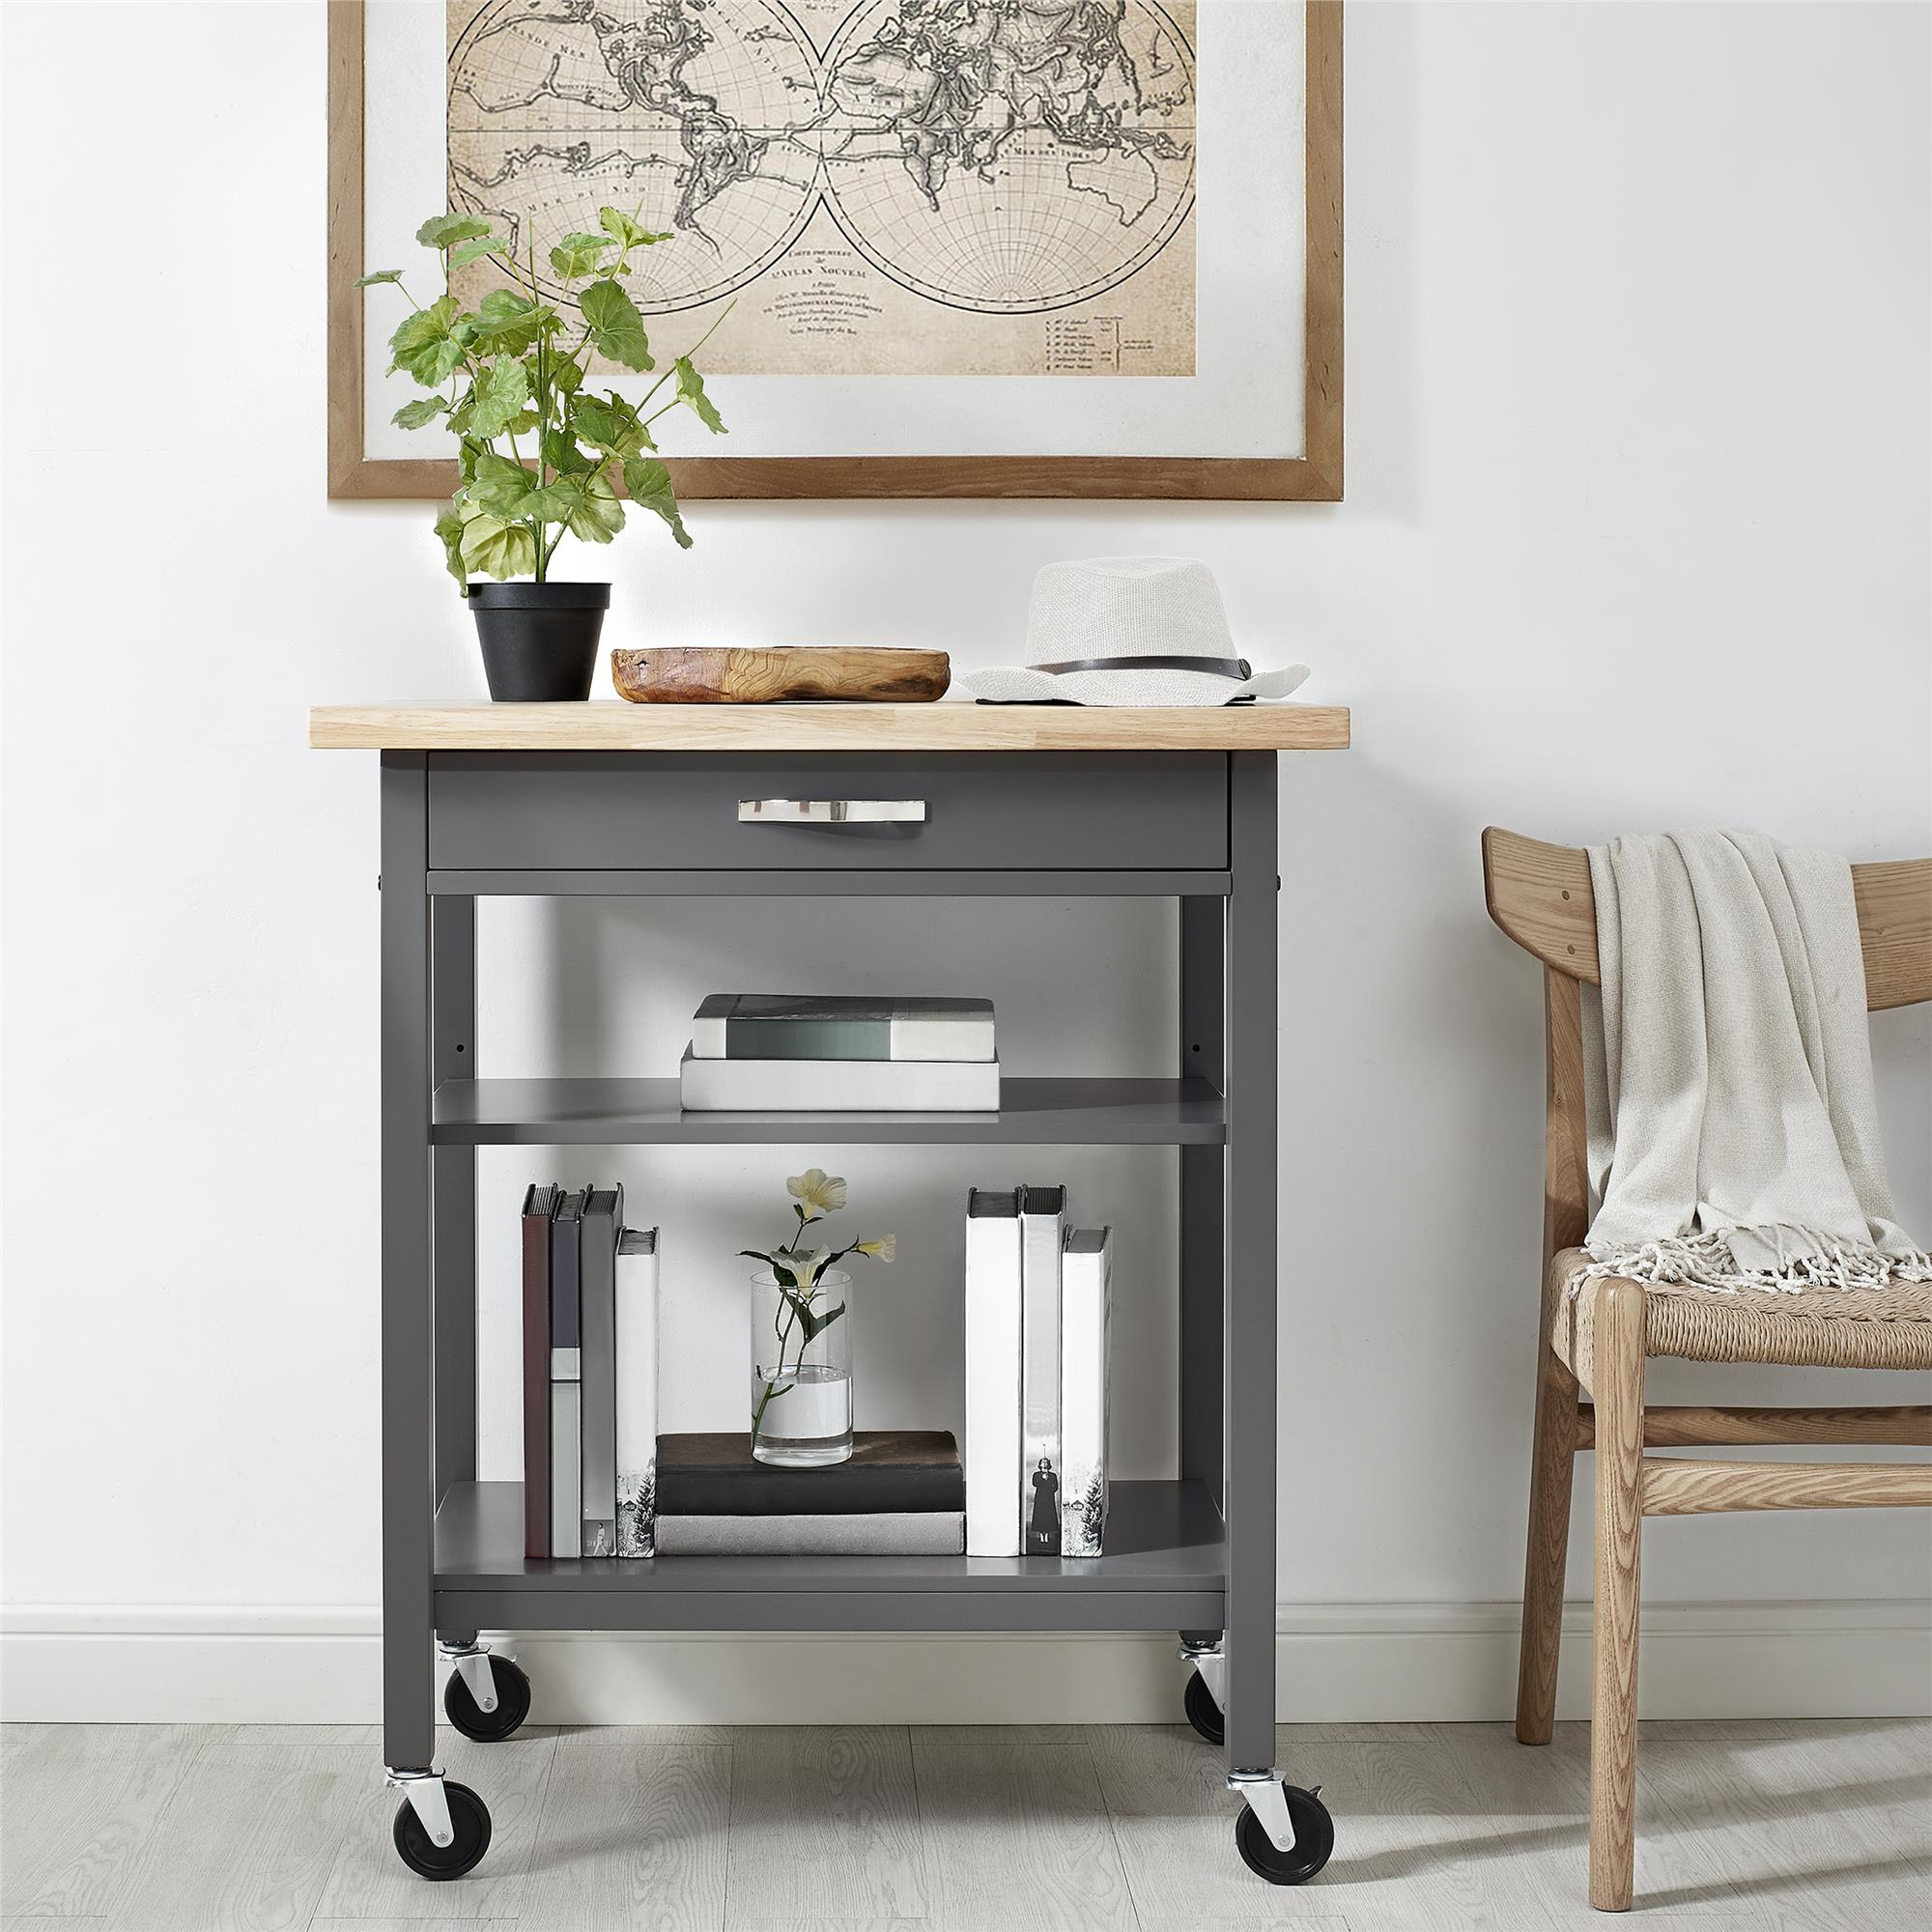 criss cross table legs the super real mainstays nightstand end dorel living multifunction cart gray source set room furniture laminate rustic headboards round glass top dark wood